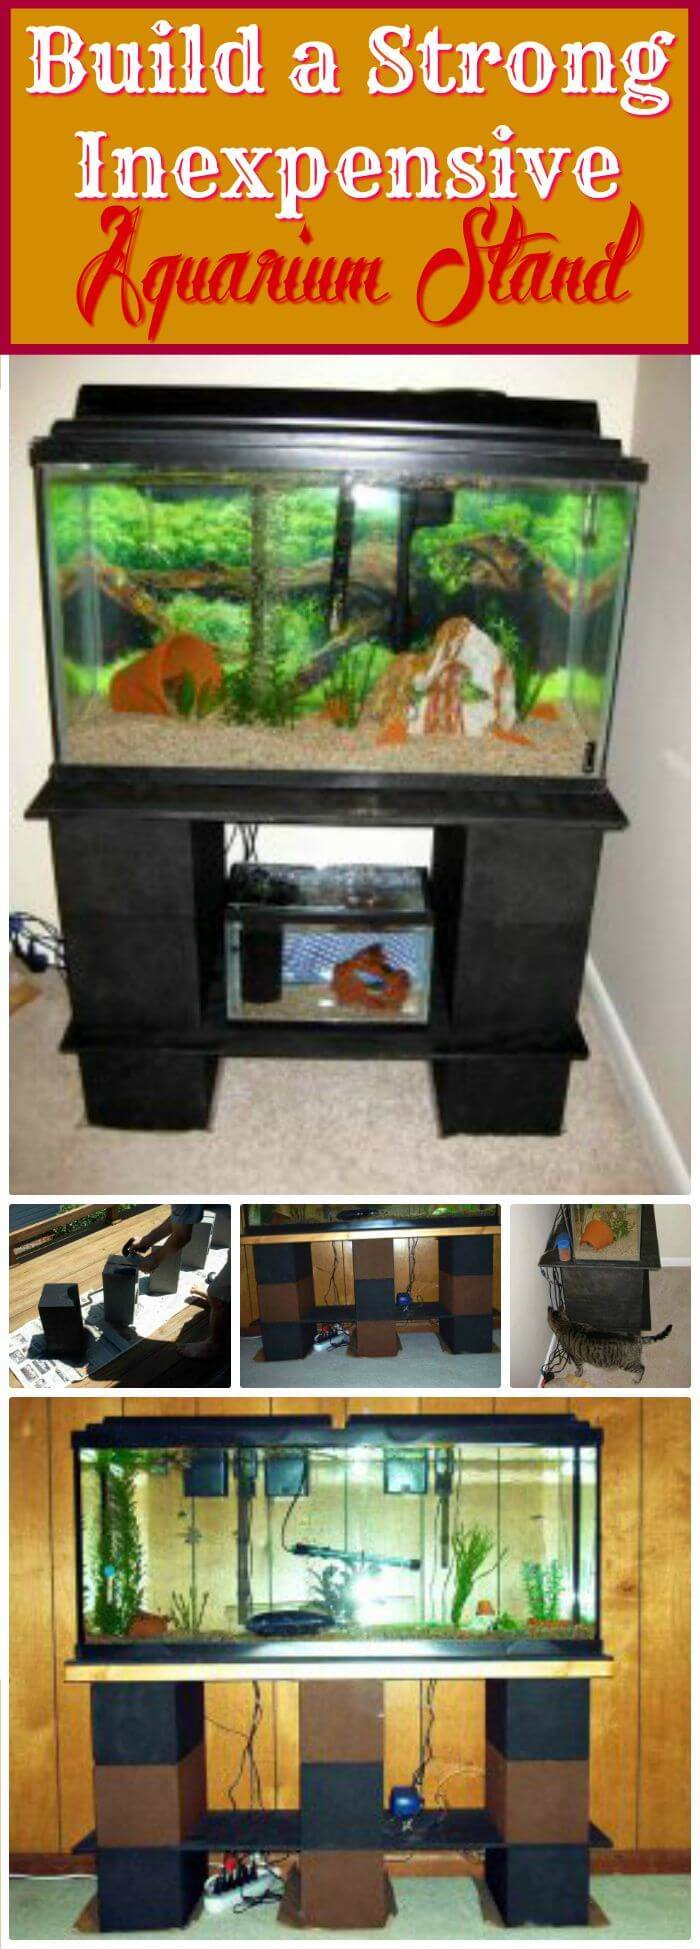 23 DIY Aquarium Stand Plans - Page 3 of 4 - DIY & Crafts